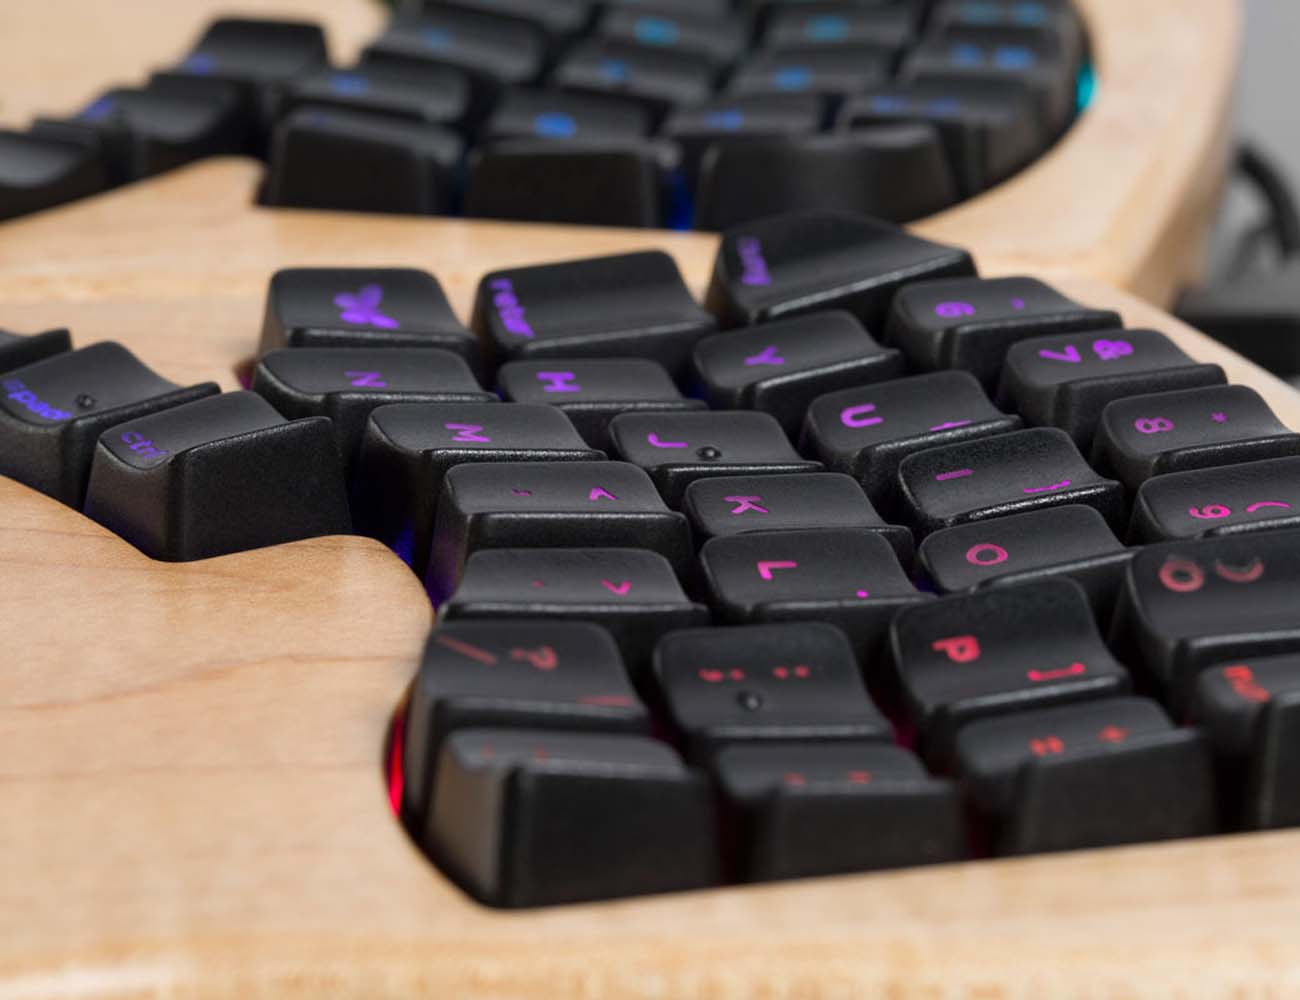 The Model 01: An Heirloom-Grade Keyboard For Serious Typists